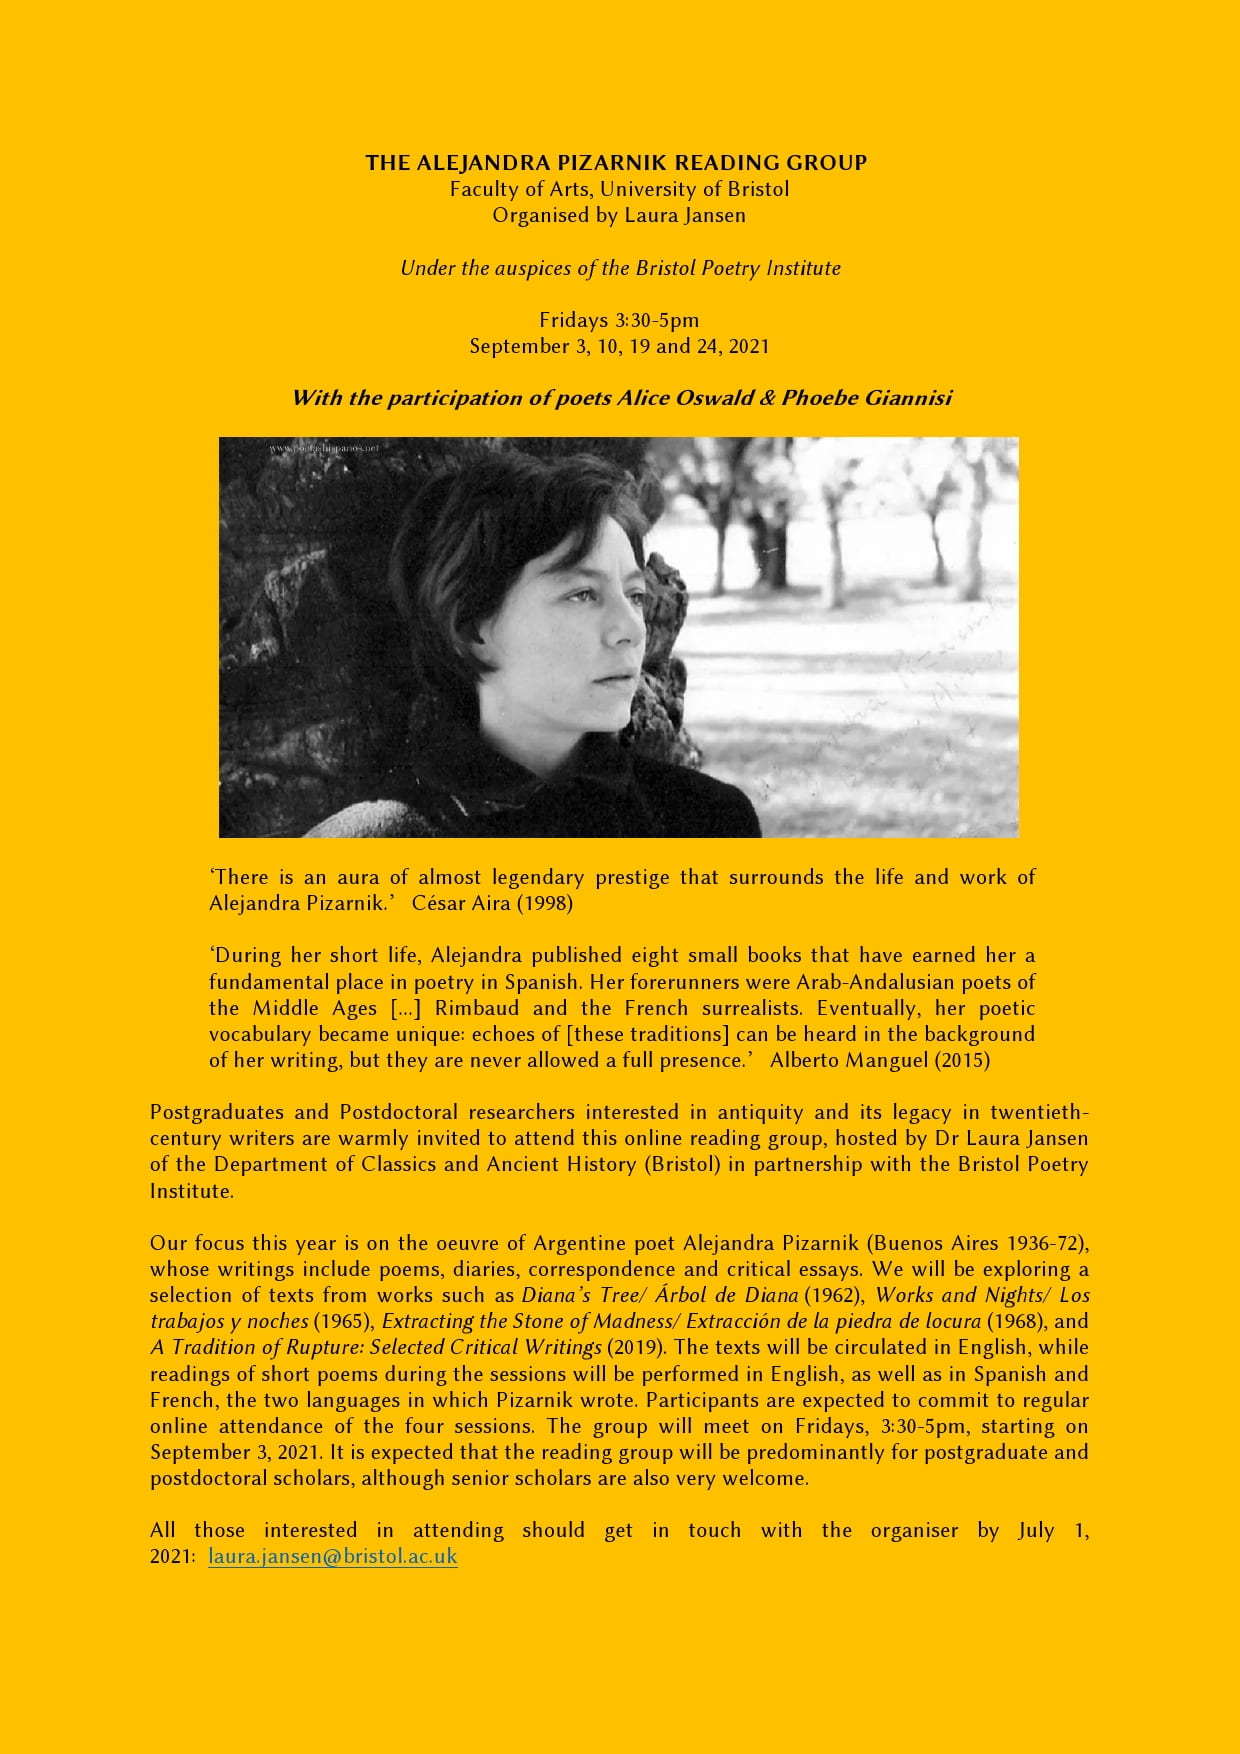 THE ALEJANDRA PIZARNIK READING GROUP Faculty of Arts Organised by Laura Jansen Under the auspices of the Bristol Poetry Institute Fridays 3:30-5pm September 3, 10, 19 and 24, 2021 With the participation of poets Alice Oswald & Phoebe Giannisi 'There is an aura of almost legendary, classical prestige that surrounds the life and work of Alejandra Pizarnik.' César Aira (1998) During her short life, Alejandra published eight small books that have earned her a fundamental place in poetry in Spanish. Her forerunners were classical Greek and Roman poets, Arab-Andalusian poets of the Middle Ages [...] Rimbaud and the French surrealists. Eventually, her poetic vocabulary became unique: echoes of [these traditions] can be heard in the background of her writing, but they are never allowed a full presence. Alberto Manguel (2015) Postgraduates and Postdoctoral researchers interested in twentieth-century writers are warmly invited to attend this online interdisciplinary reading group, hosted by Laura Jansen of the Department of Classics and Ancient History in partnership with the Bristol Poetry Institute. Our focus this year is on the oeuvre of Argentine poet Alejandra Pizarnik (Buenos Aires 1936-72), whose writings include poems, diaries, correspondence and critical essays. We will be exploring a selection of texts from works such as Diana's Tree/ Árbol de Diana (1962), Works and Nights/ Los trabajos y noches (1965), Extracting the Stone of Madness/ Extracción de la piedra de locura (1968), and A Tradition of Rupture: Selected Critical Writings (2019). The texts will be circulated in English, while readings of short poems during the sessions will be performed in English, as well as in Spanish and French, the two languages in which Pizarnik wrote. Participants are expected to commit to regular online attendance of the four sessions. The group will meet on Fridays, 3:30-5pm, starting on September 3, 2021. It is expected that the reading group will be predominantly for postgraduate